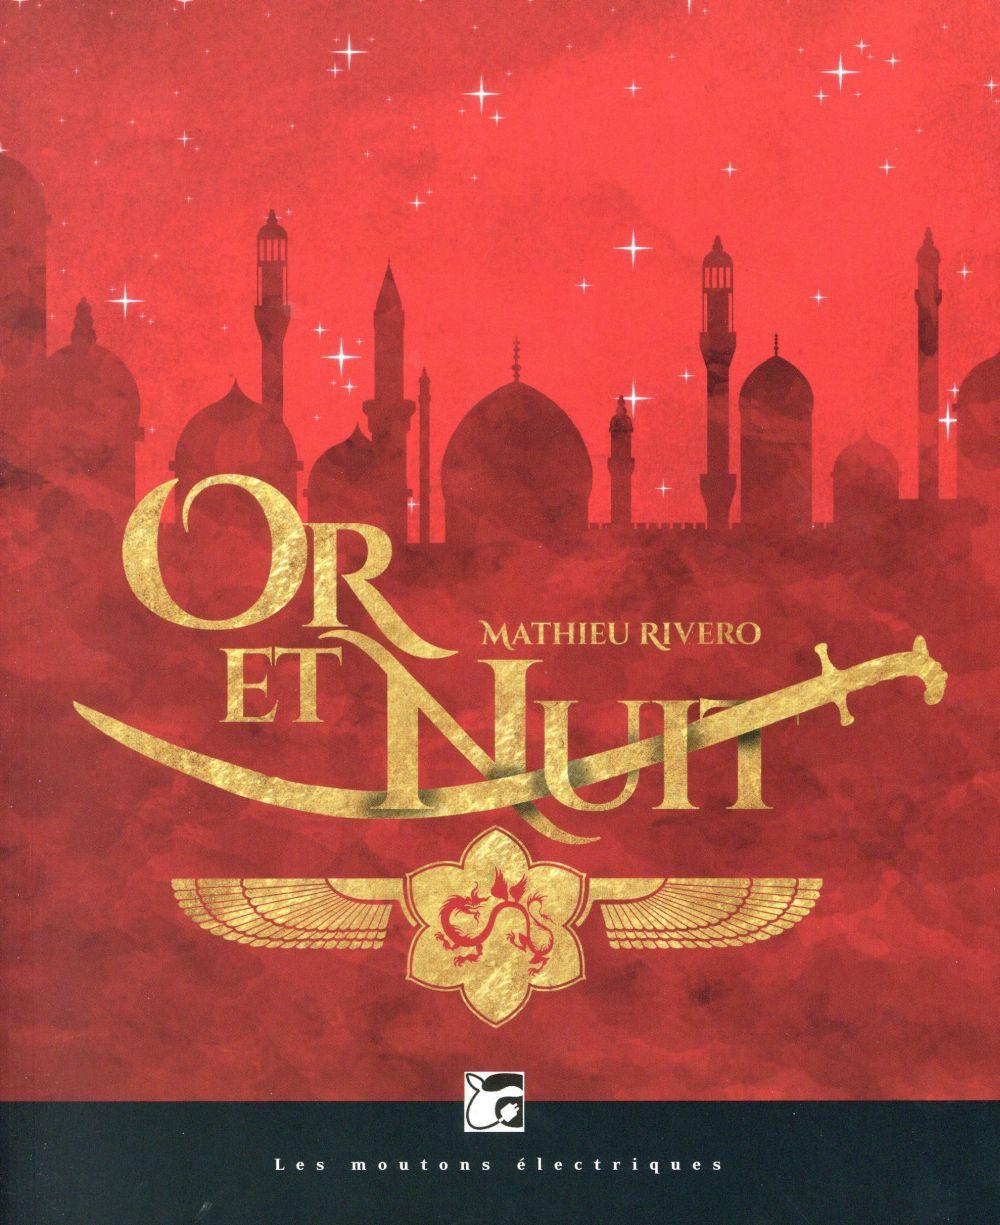 Or et nuit  - Mathieu Rivero